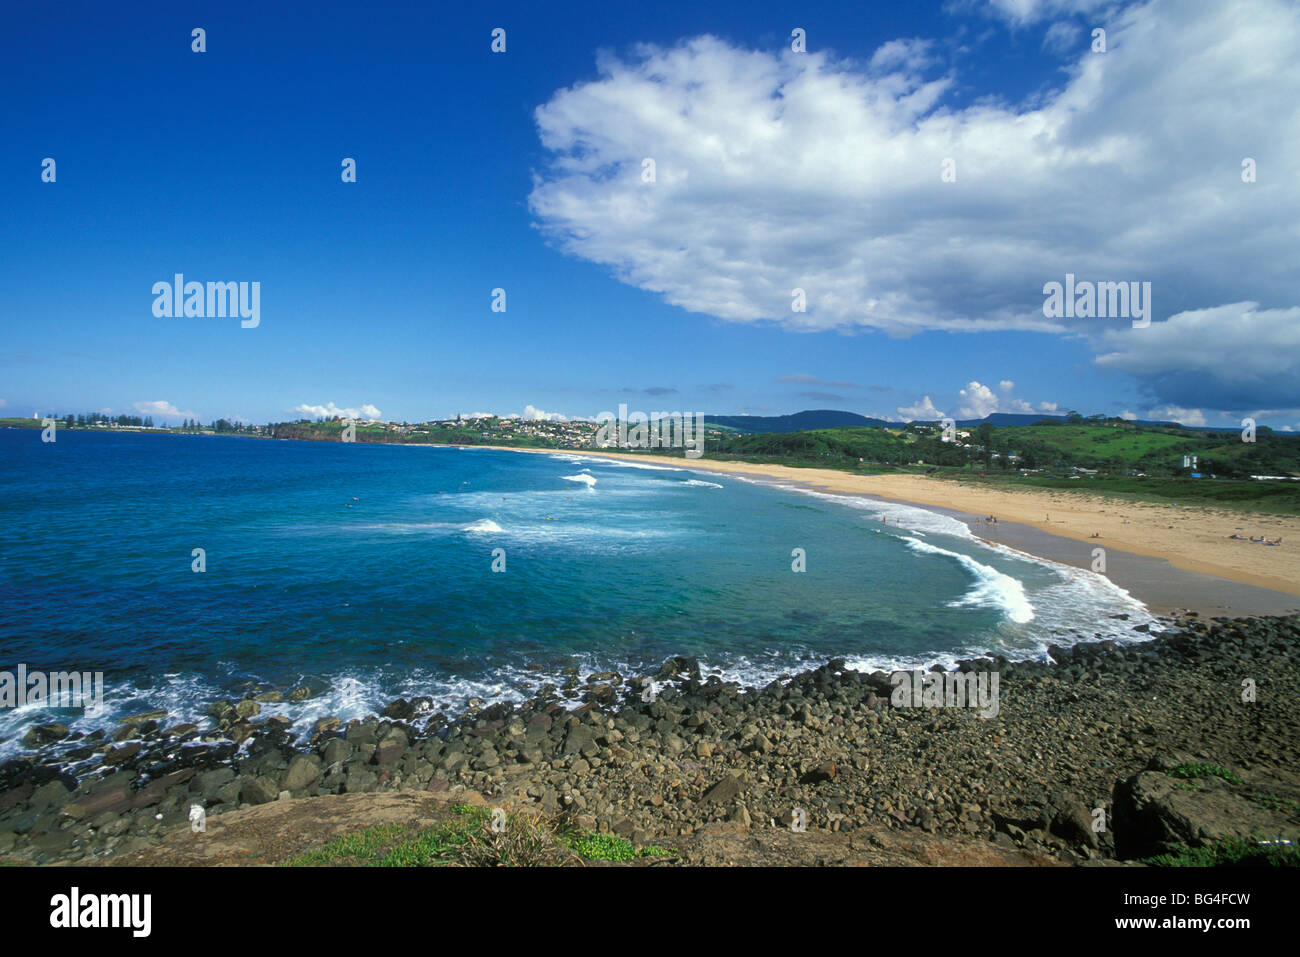 Bombo Beach, Kiama, south coast, New South Wales, Australia, Pacific - Stock Image